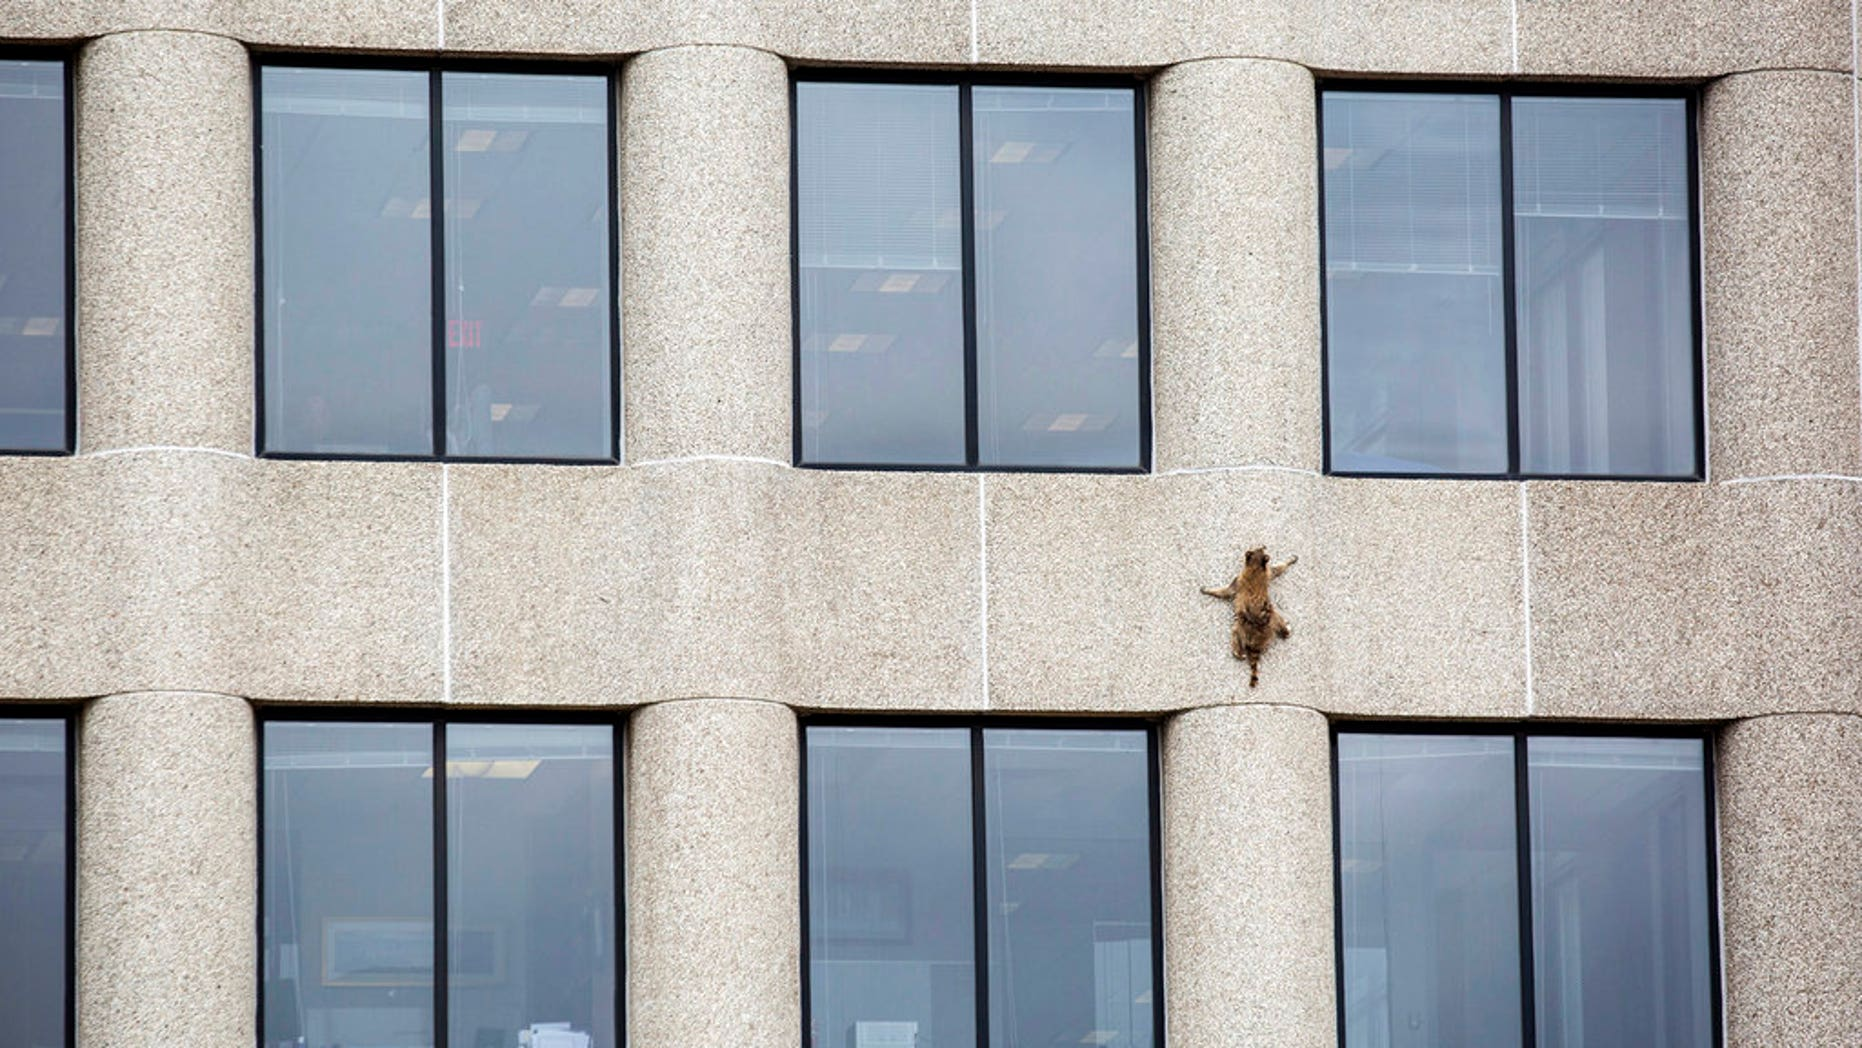 A raccoon scurries up the side of the UBS Tower in St. Paul, Minn., on Tuesday, June 12, 2018.